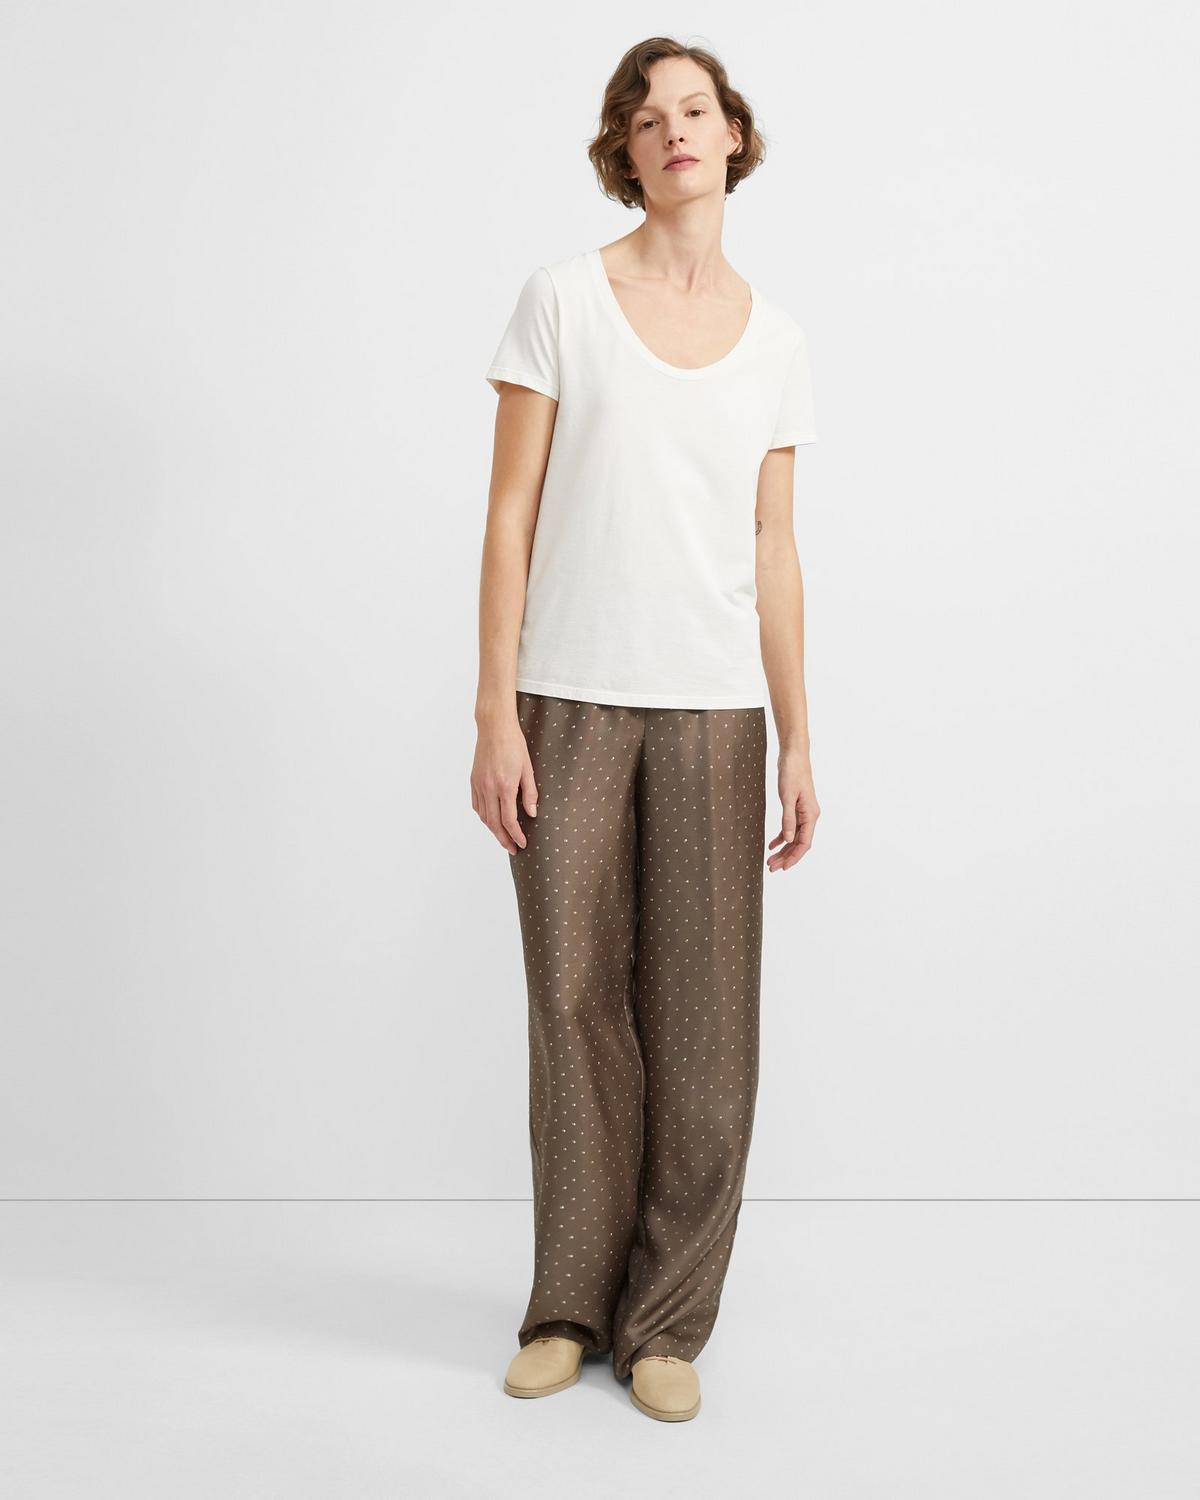 Dotted Silk Pull-On Pant